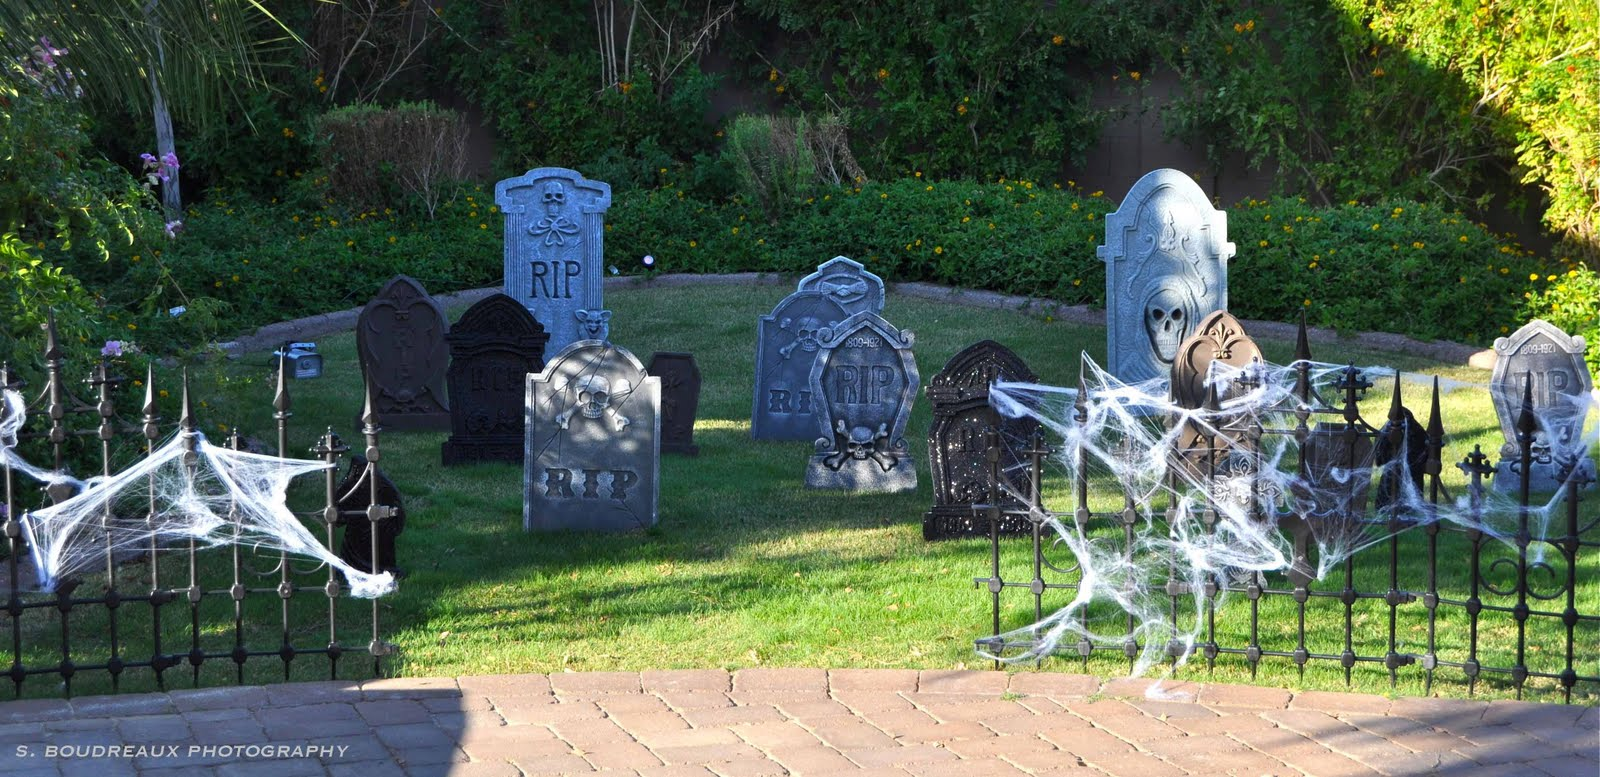 Backyard Haunted House Ideas : 20092010 All rights reserved